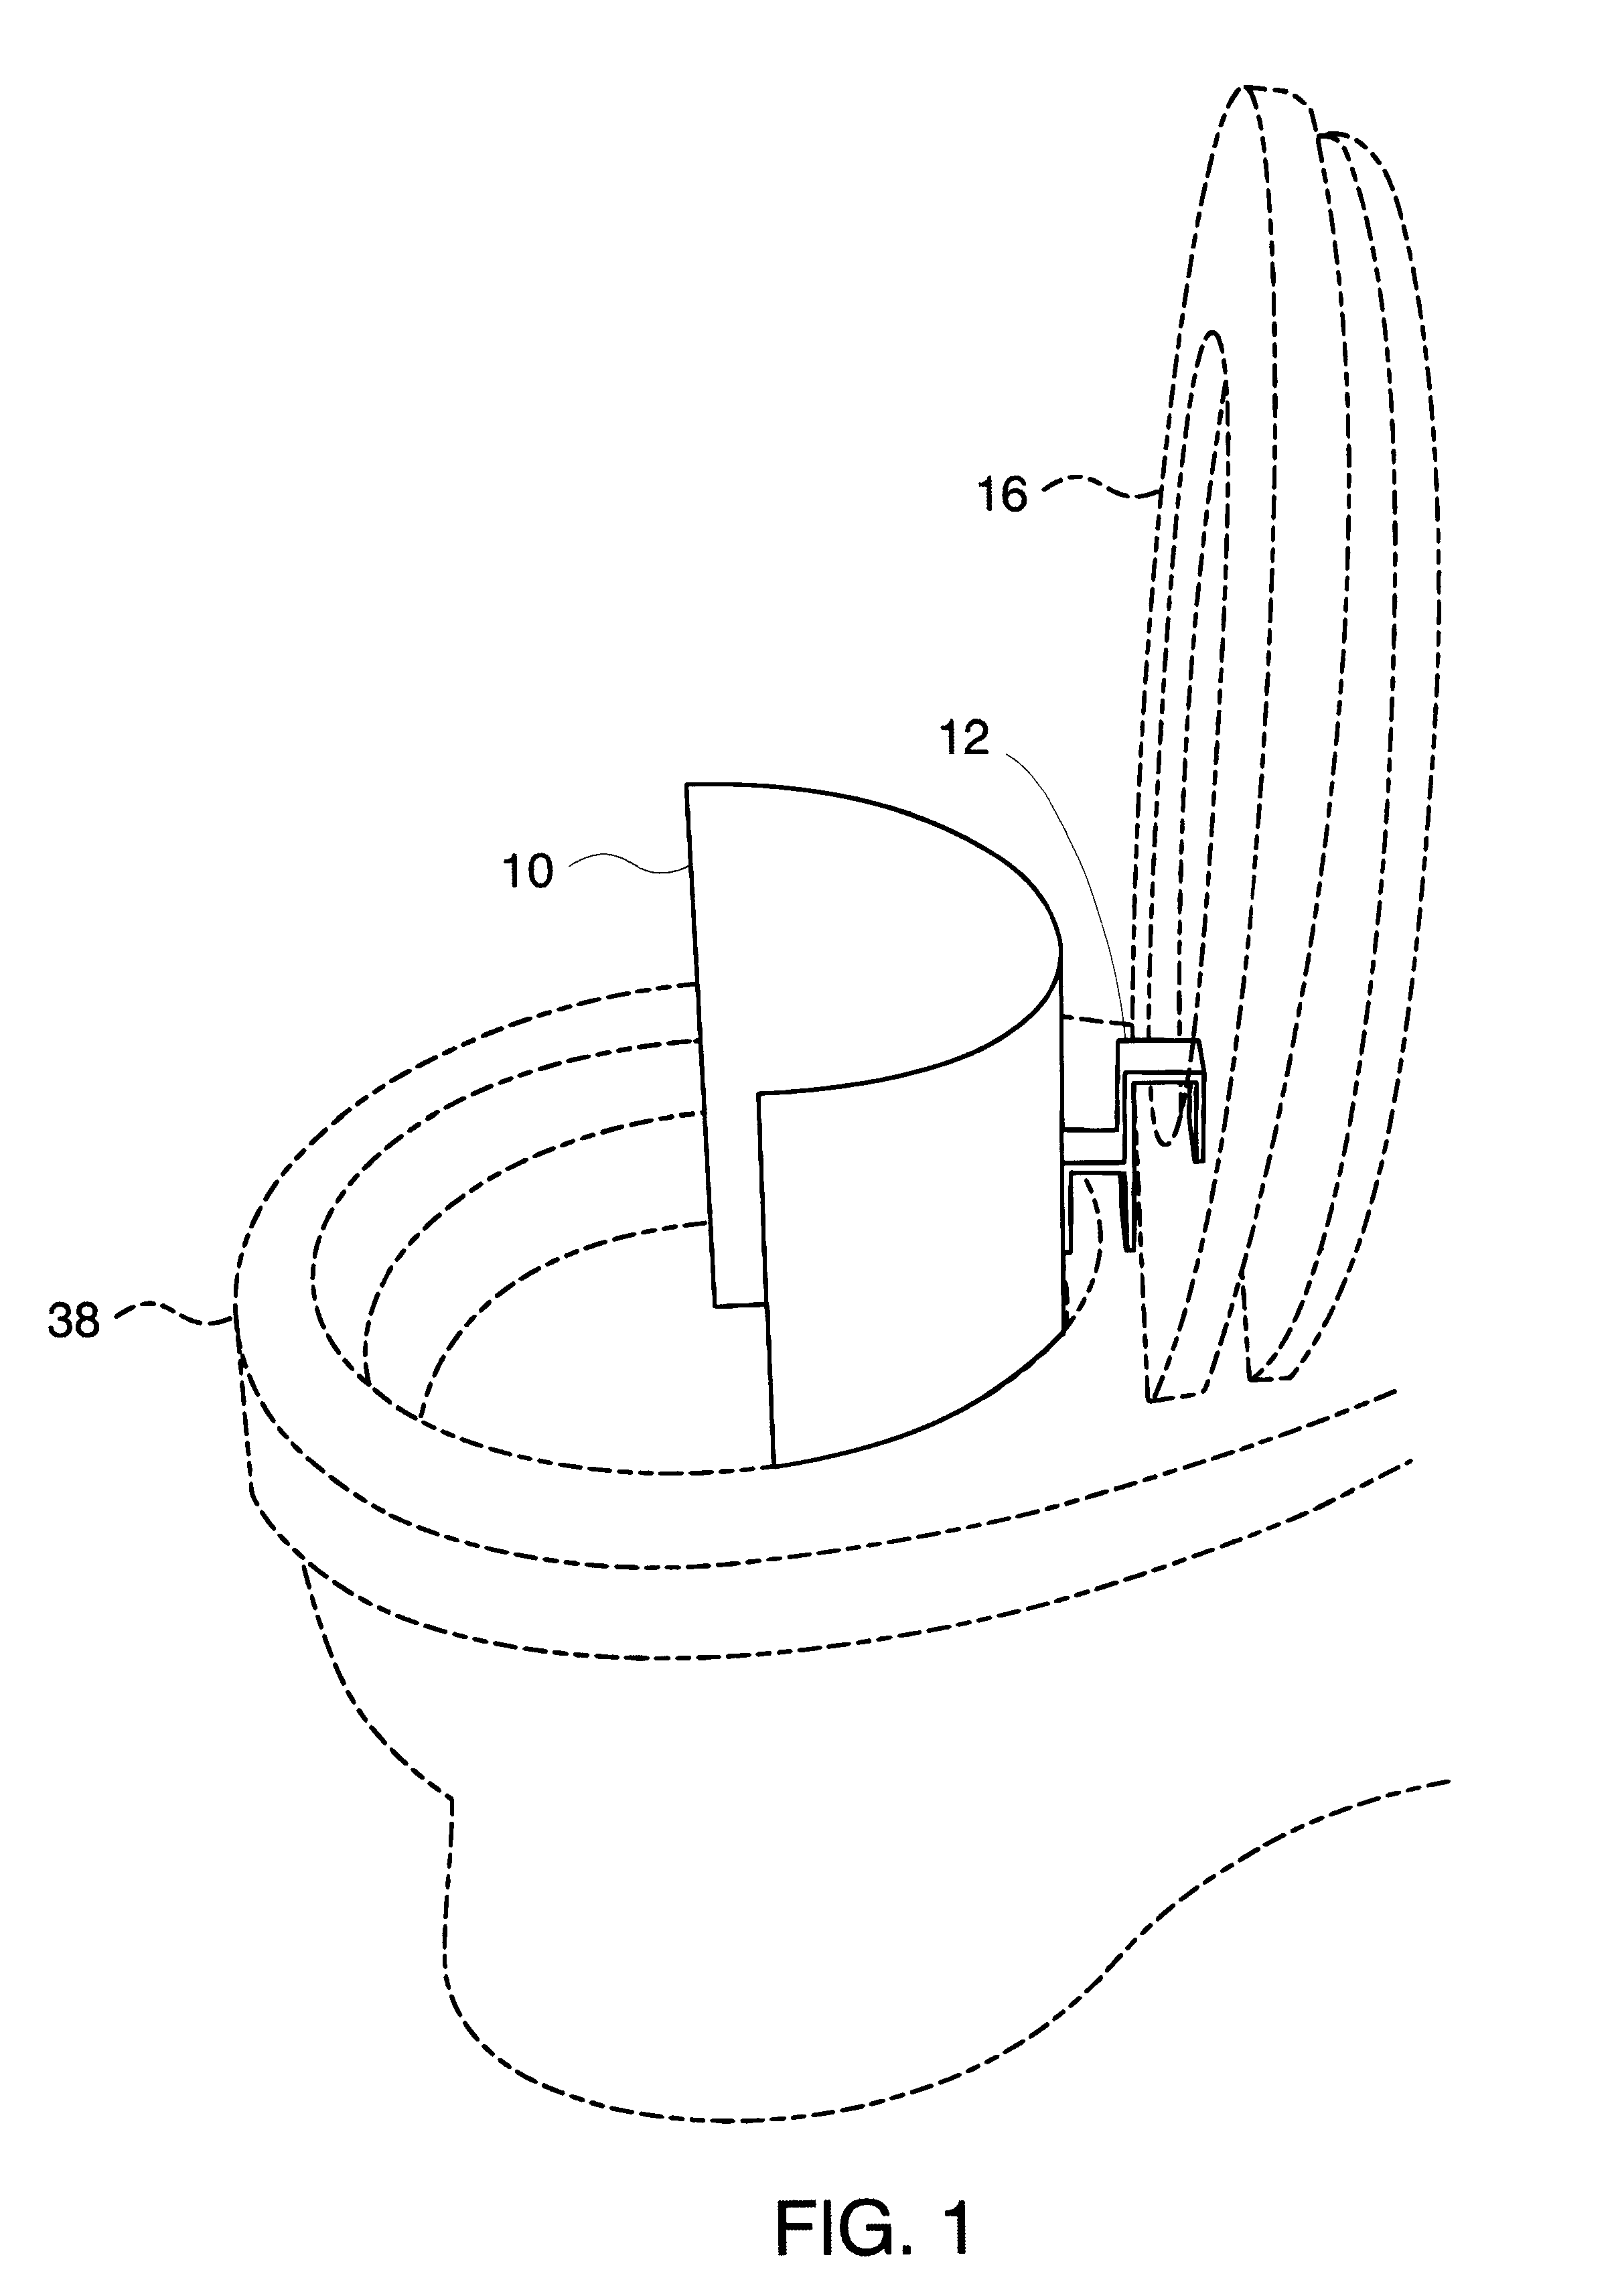 Wc Urinal Kombination Patent Us6385785 Urine Shield Removably Attached To